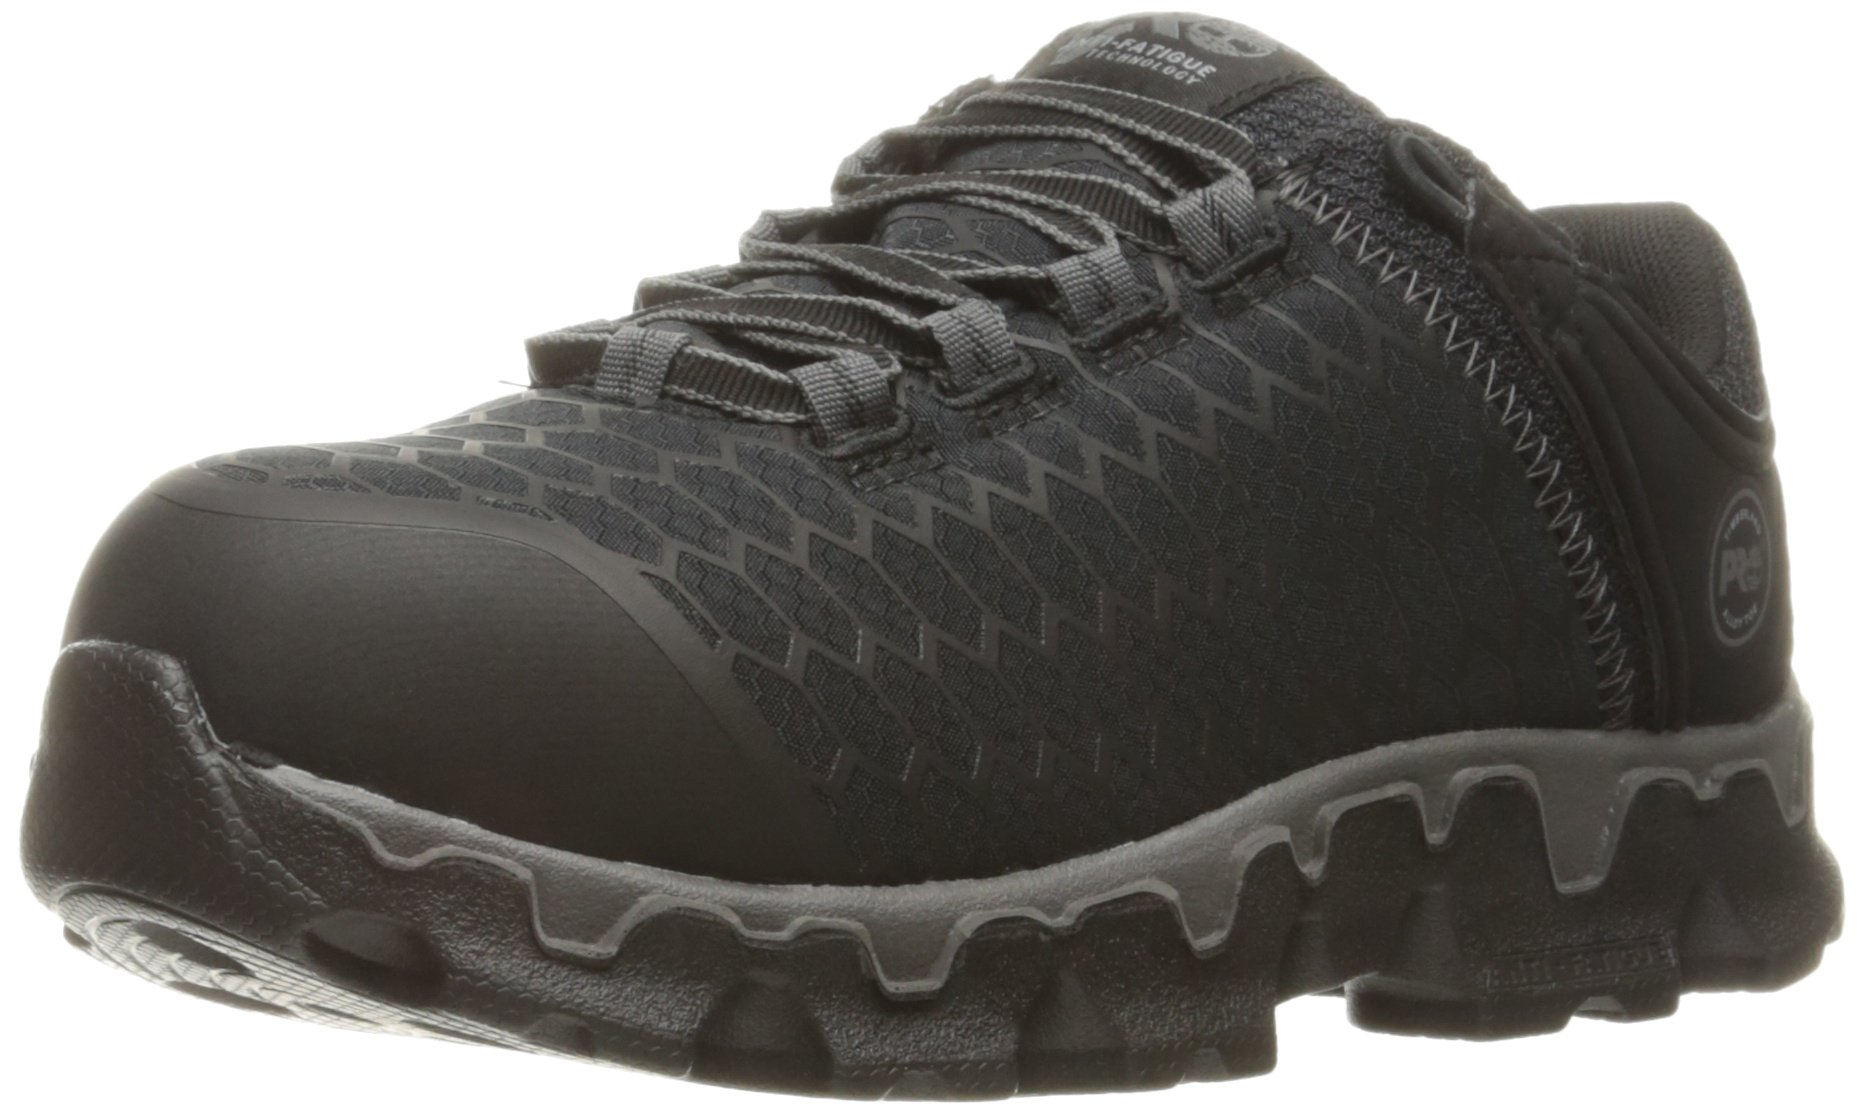 Timberland PRO Women's Powertrain Sport Alloy Toe SD+ Industrial and Construction Shoe, Black Synthetic, 7.5 W US